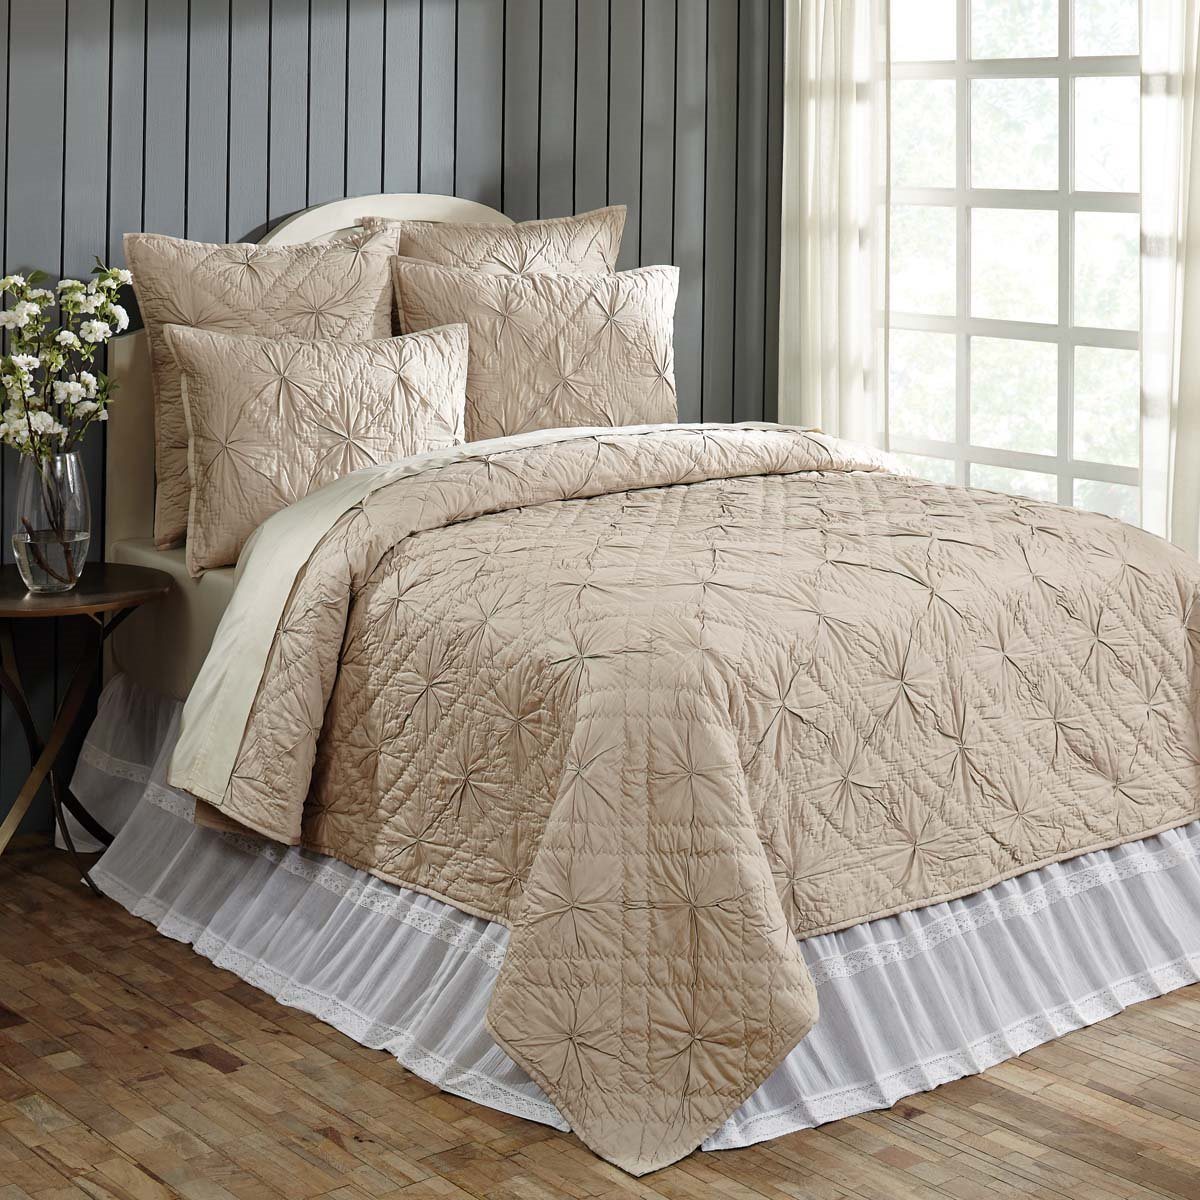 Aubree Taupe Queen Quilt